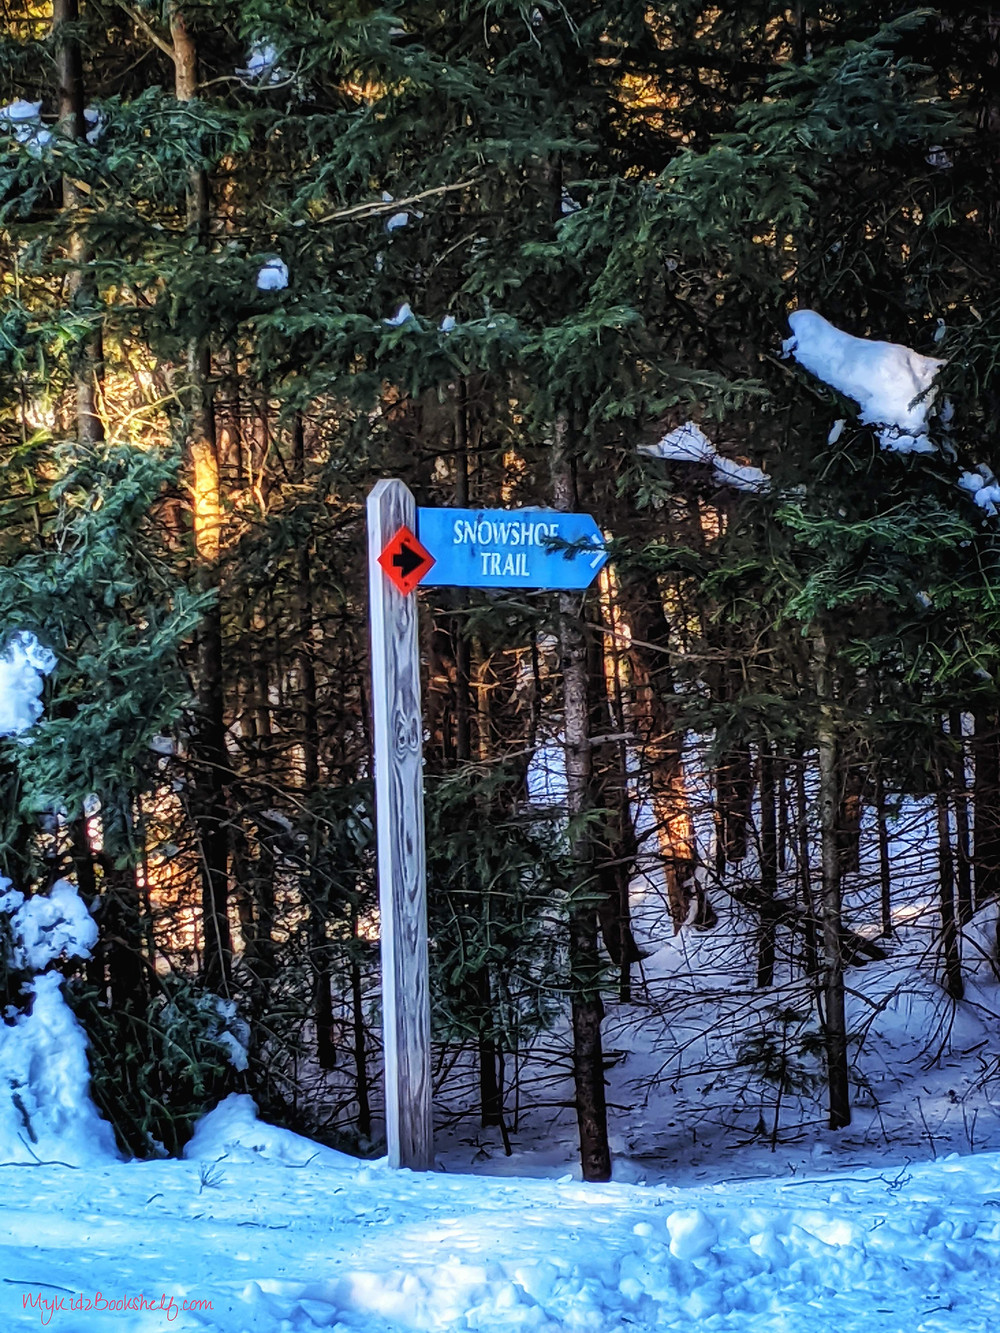 showshoe trail marker with pine trees and snowy ground around